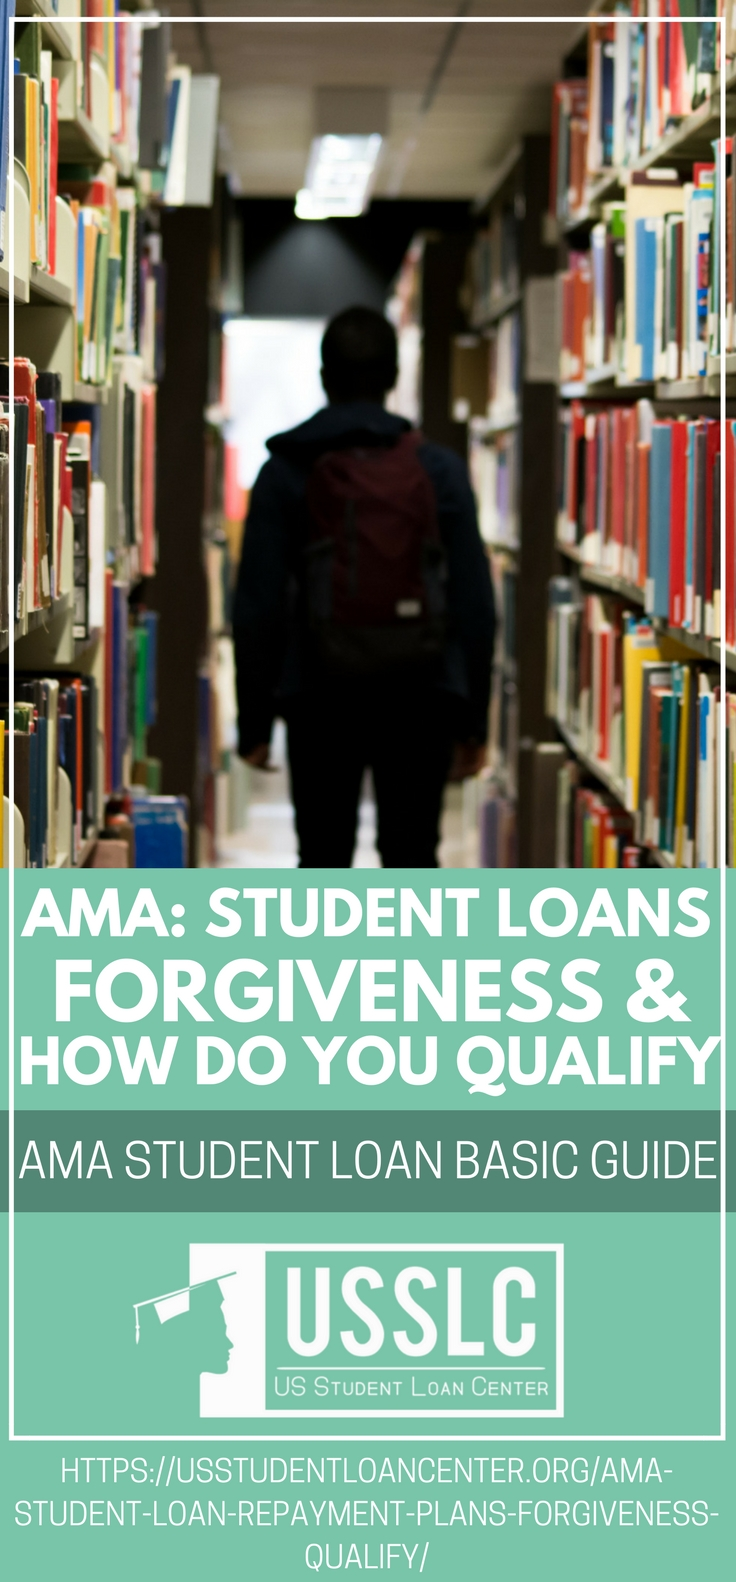 PLACARD   AMA: Student Loan Repayment Plans, Forgiveness & How Do You Qualify